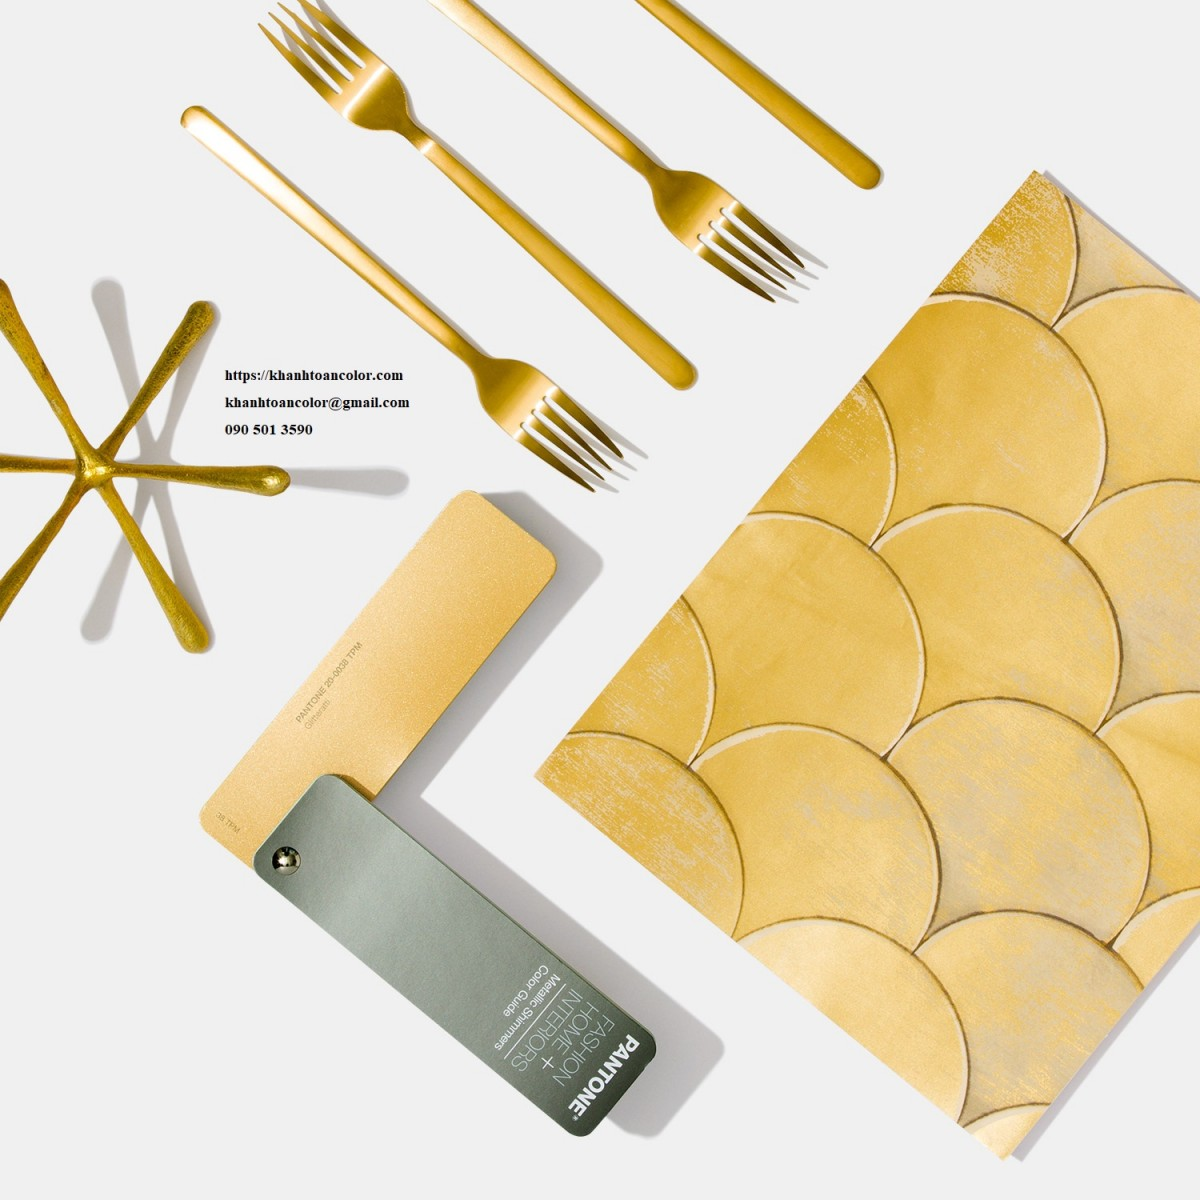 Pantone mau FHIP310N-pantone-fashion-home-interiors-metallic-shimmers-color-guide-product-3